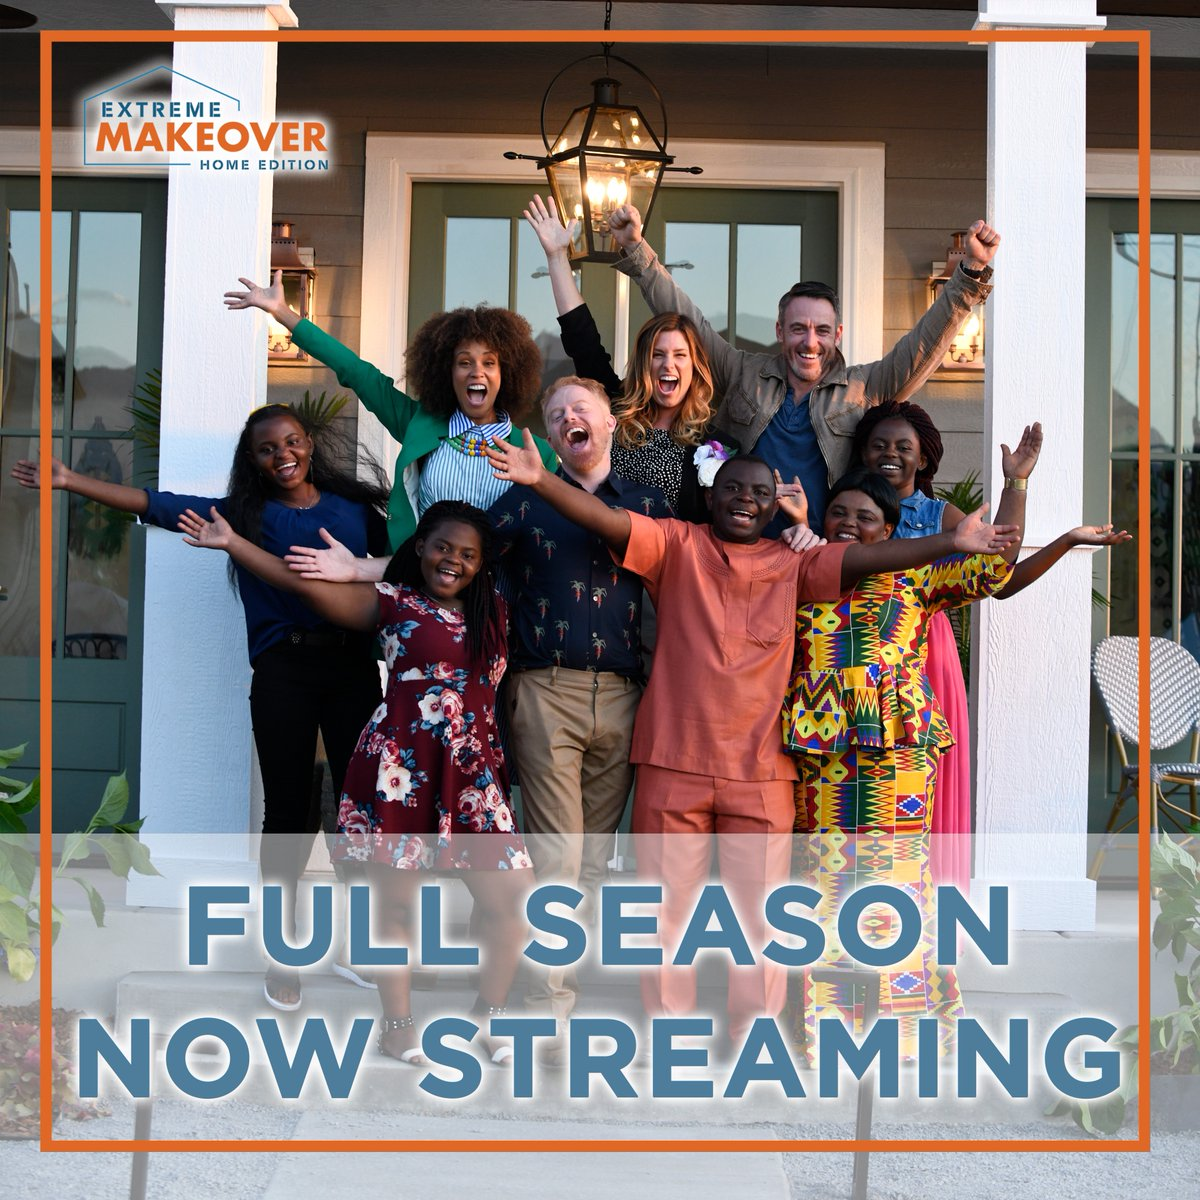 Need an #HGTVExtreme pick me up? Stream the full season on HGTV GO! watch.hgtv.com/tv-shows/extre…